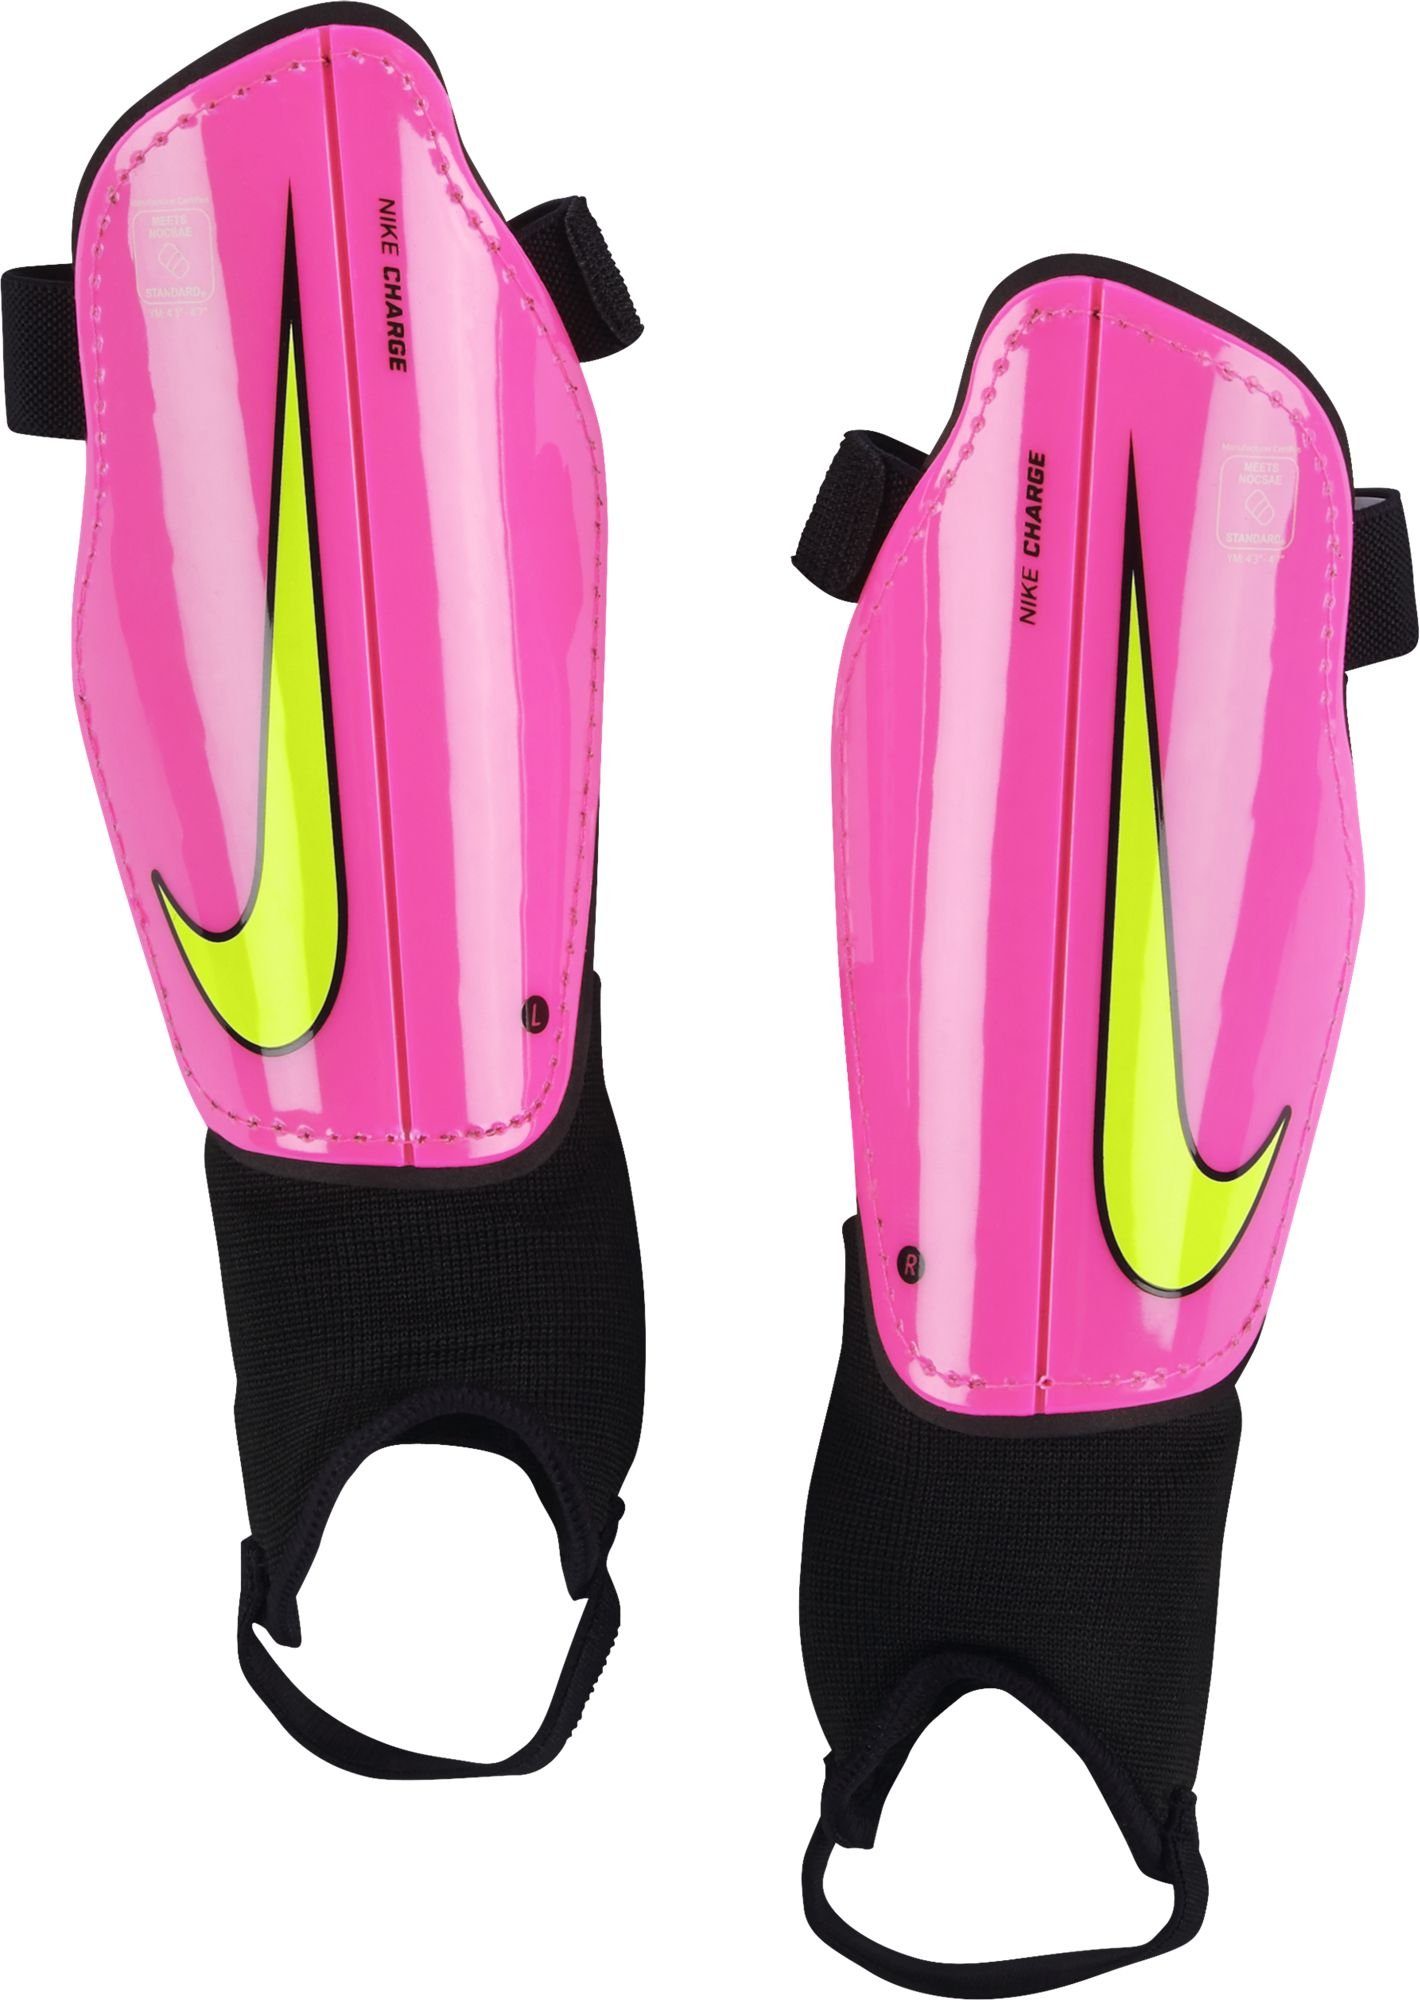 Nike Youth Charge 2.0 Soccer Shin Guard Hyper Pink/Black/Volt Size Small